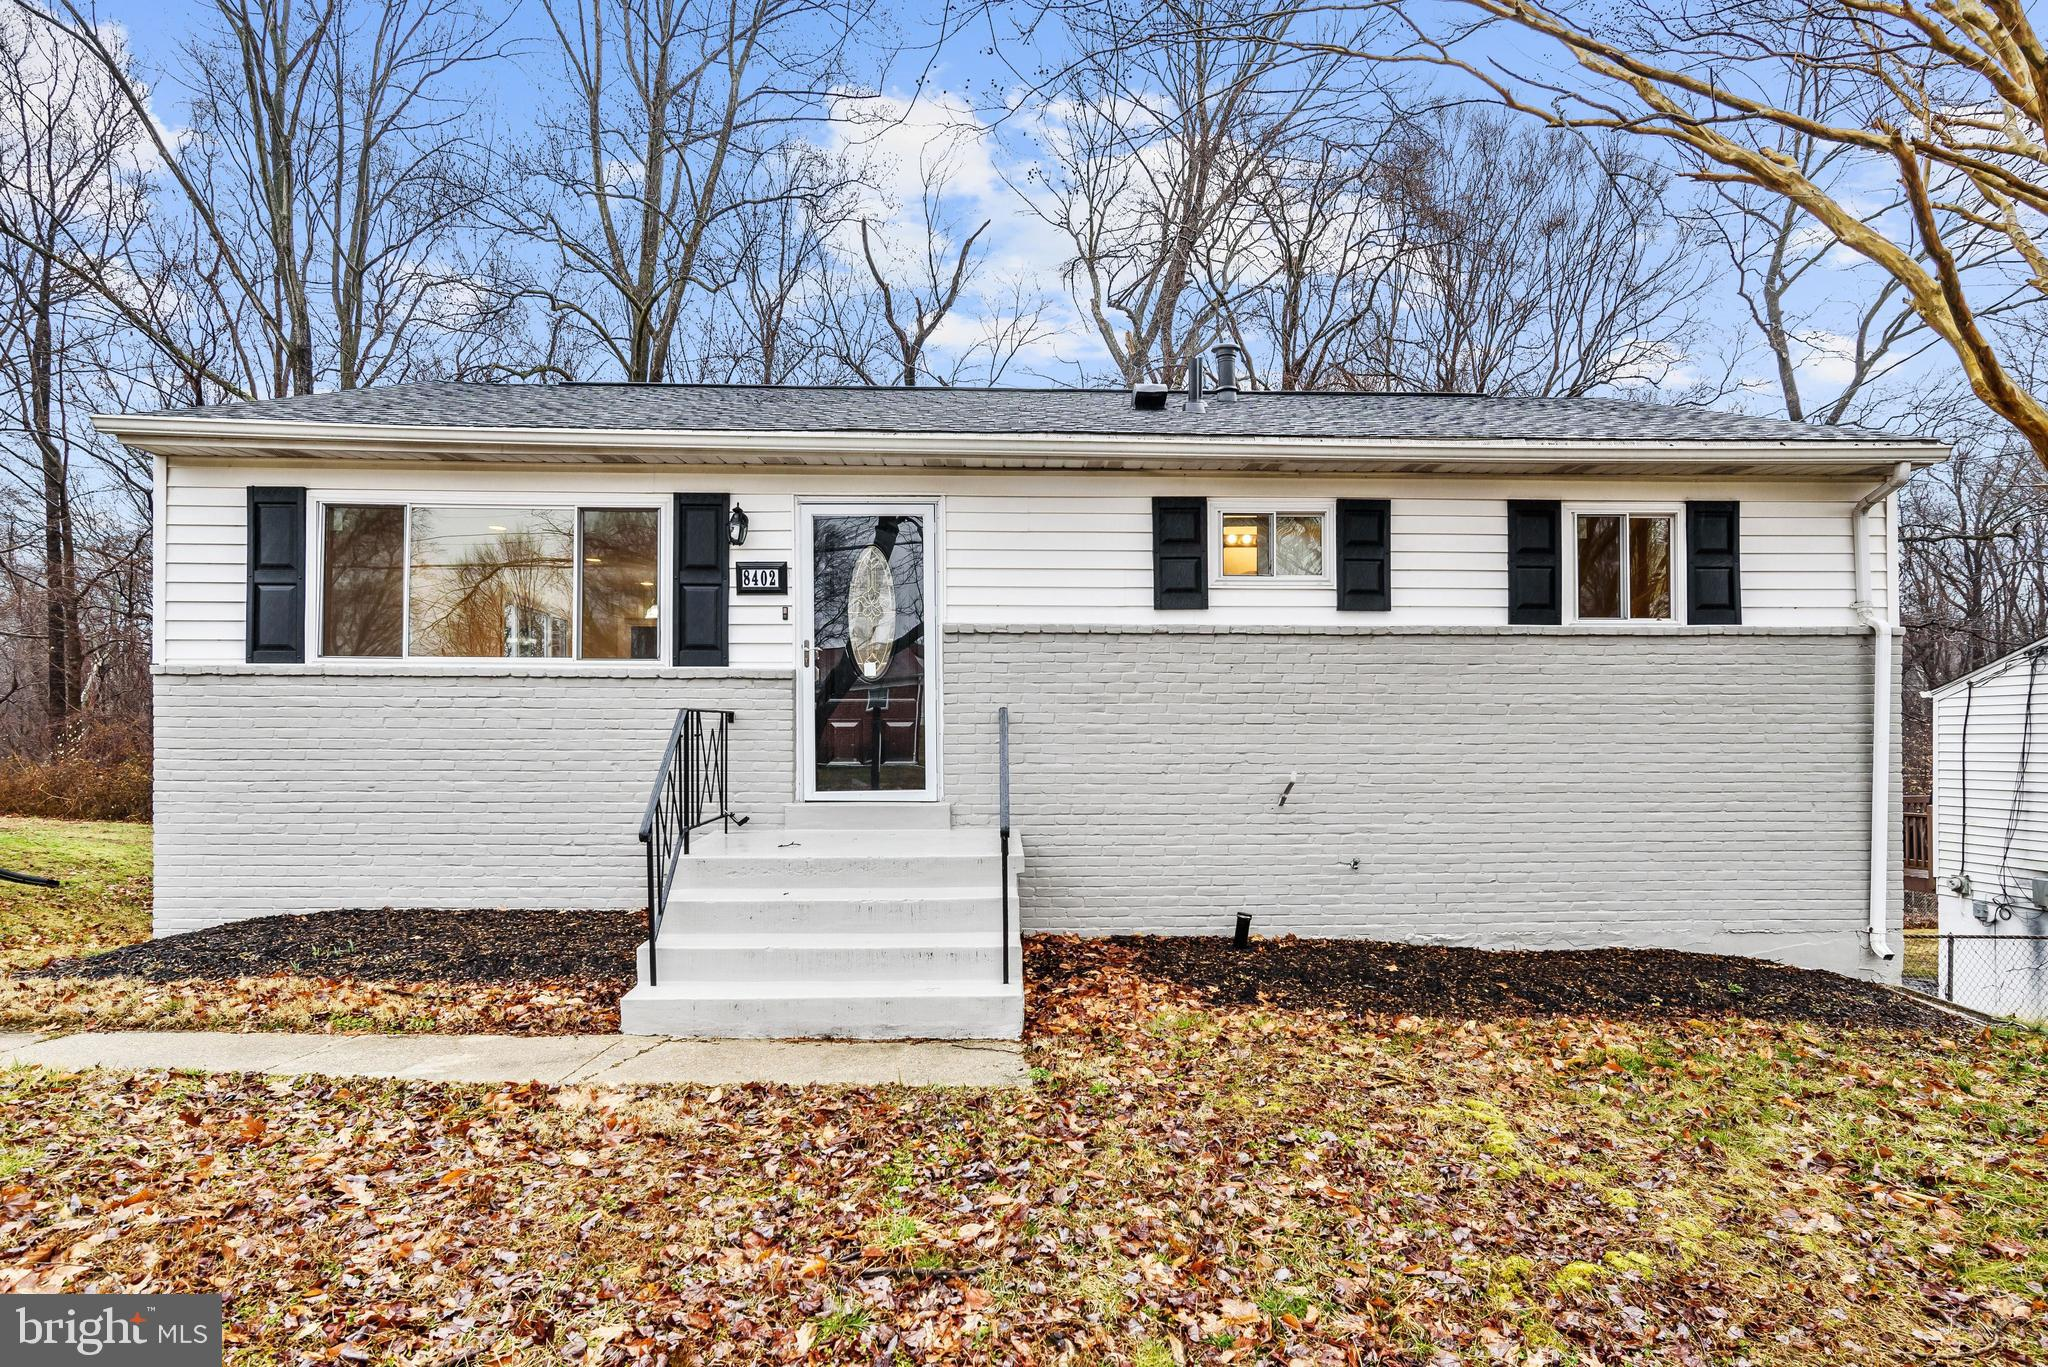 8402 RICHVILLE DRIVE, DISTRICT HEIGHTS, MD 20747